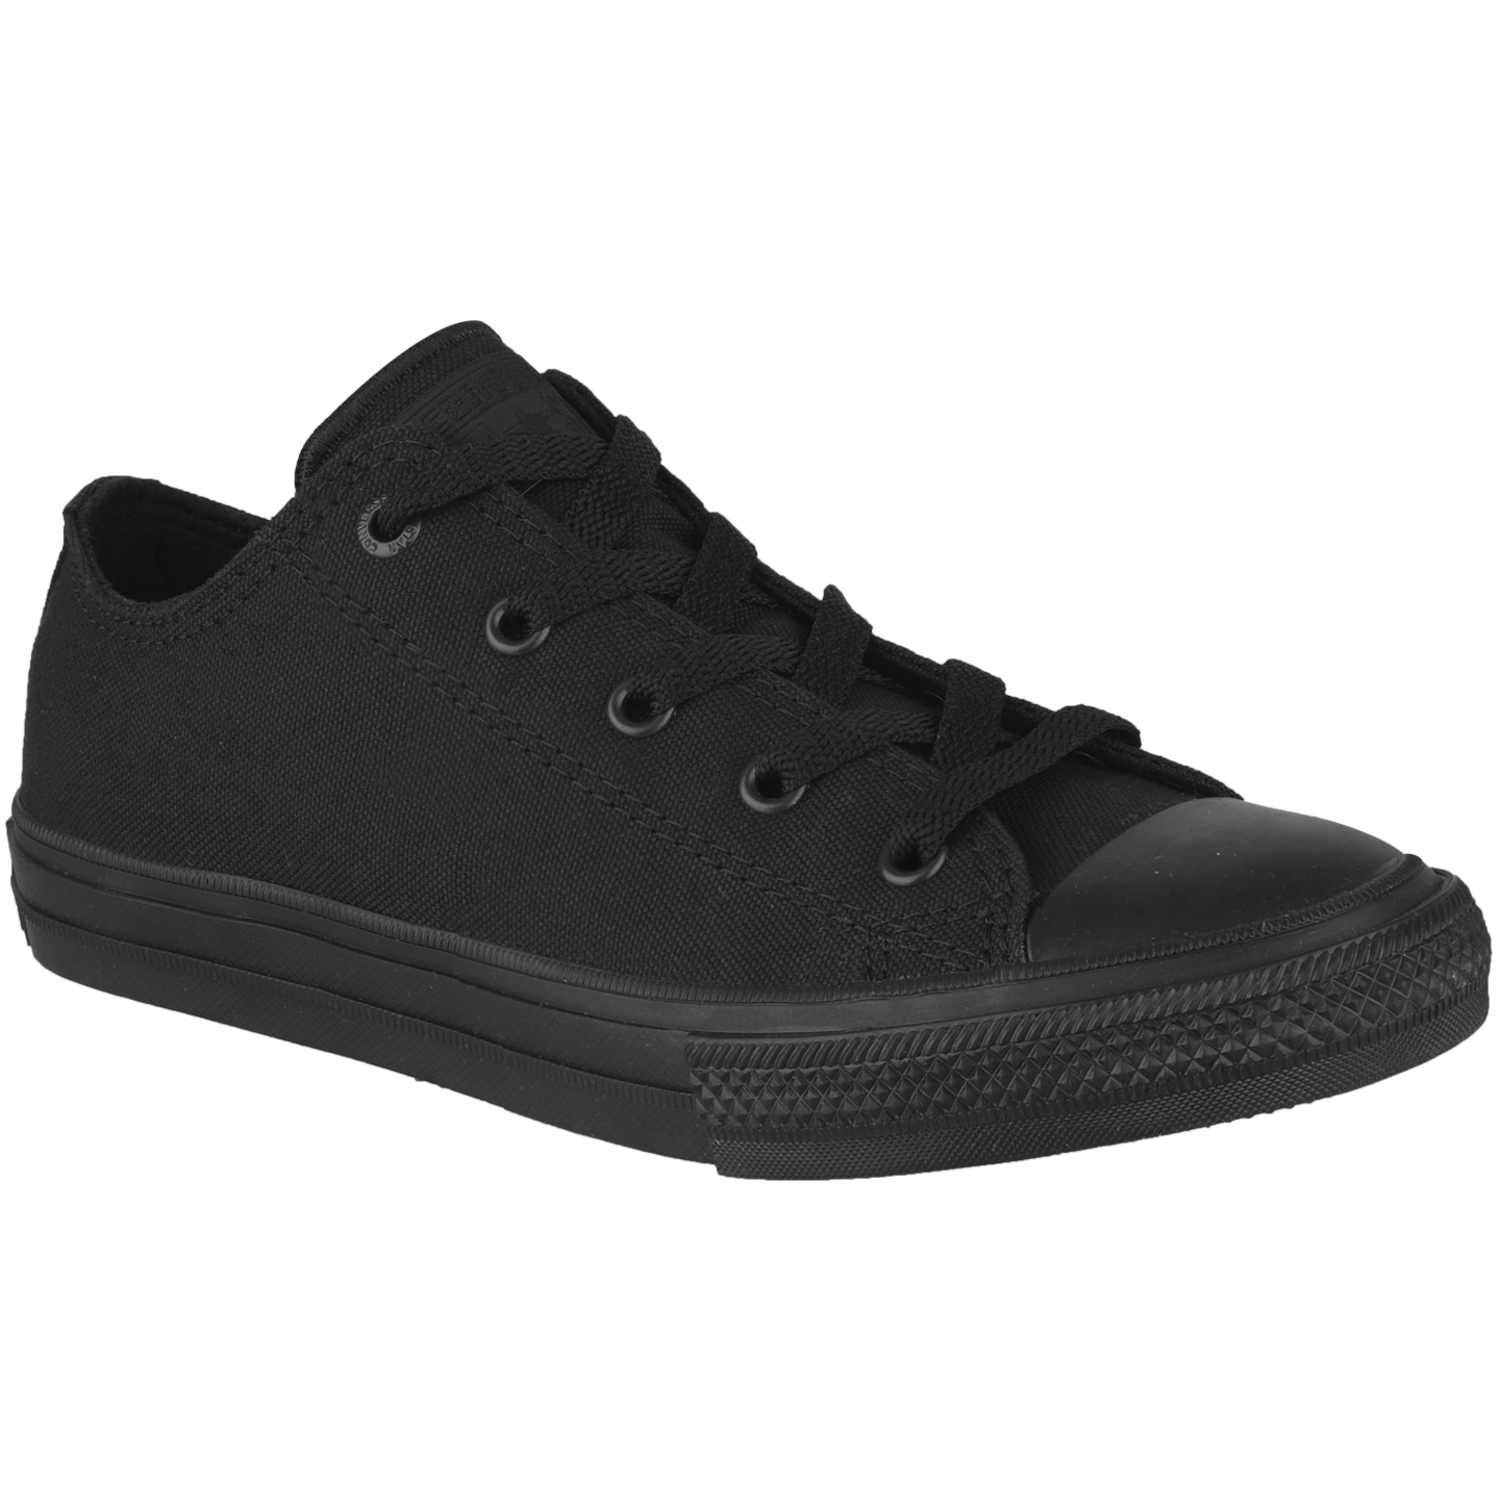 Casual de Niño Converse Negro / negro ct as ii core ox